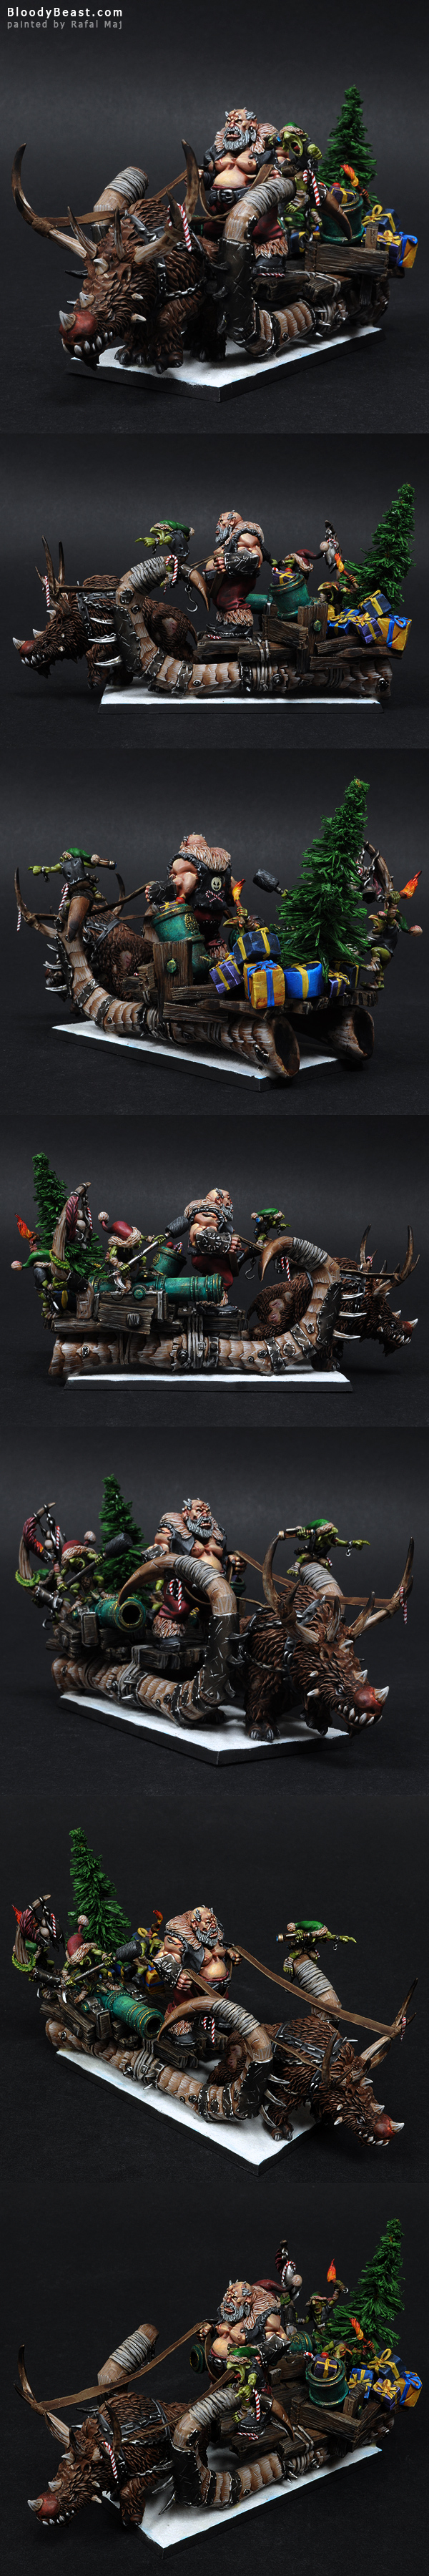 Badass Santa Ogre painted by Rafal Maj (BloodyBeast.com)